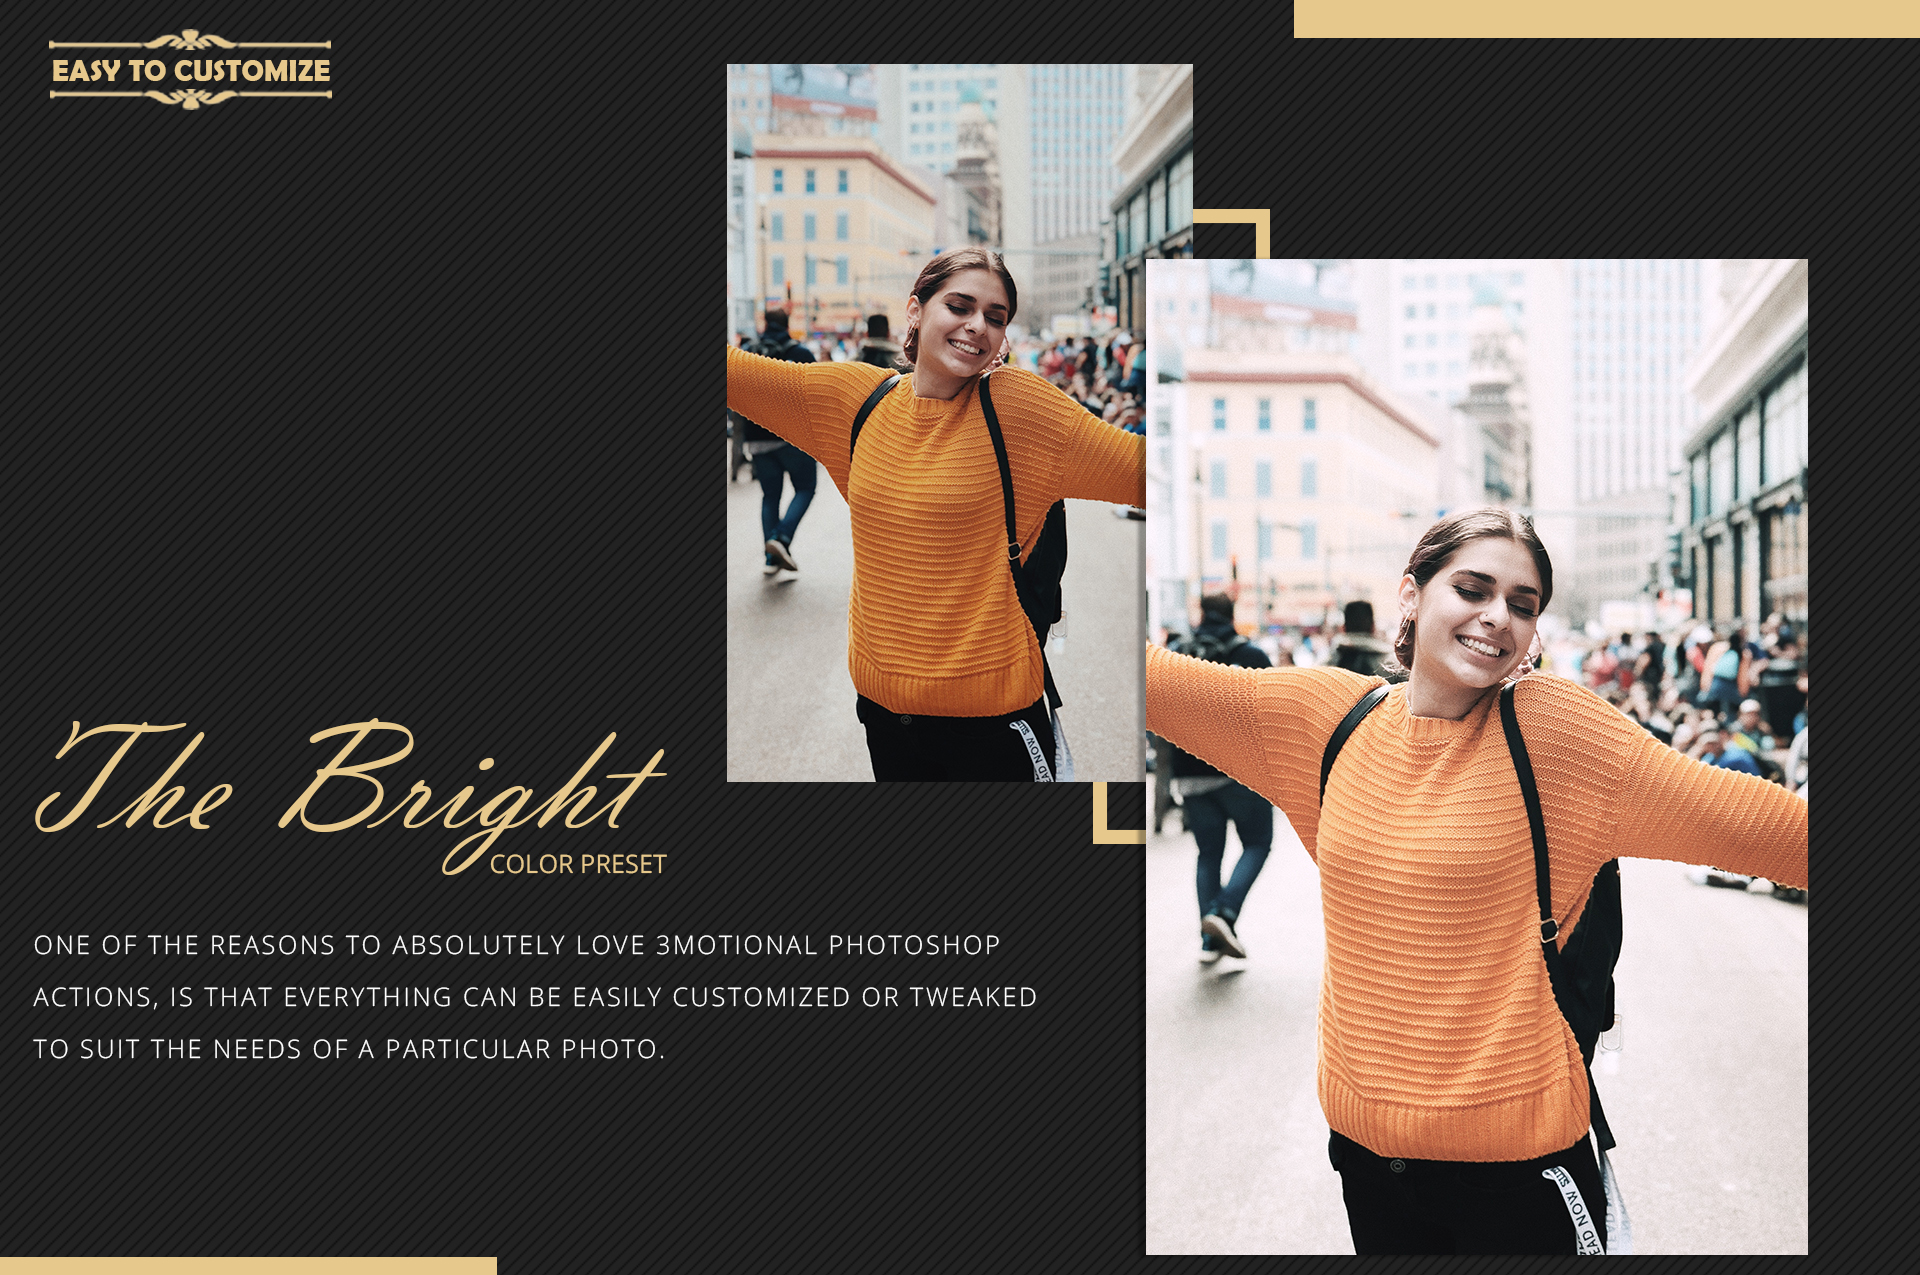 Neo Bright Color Grading photoshop actions